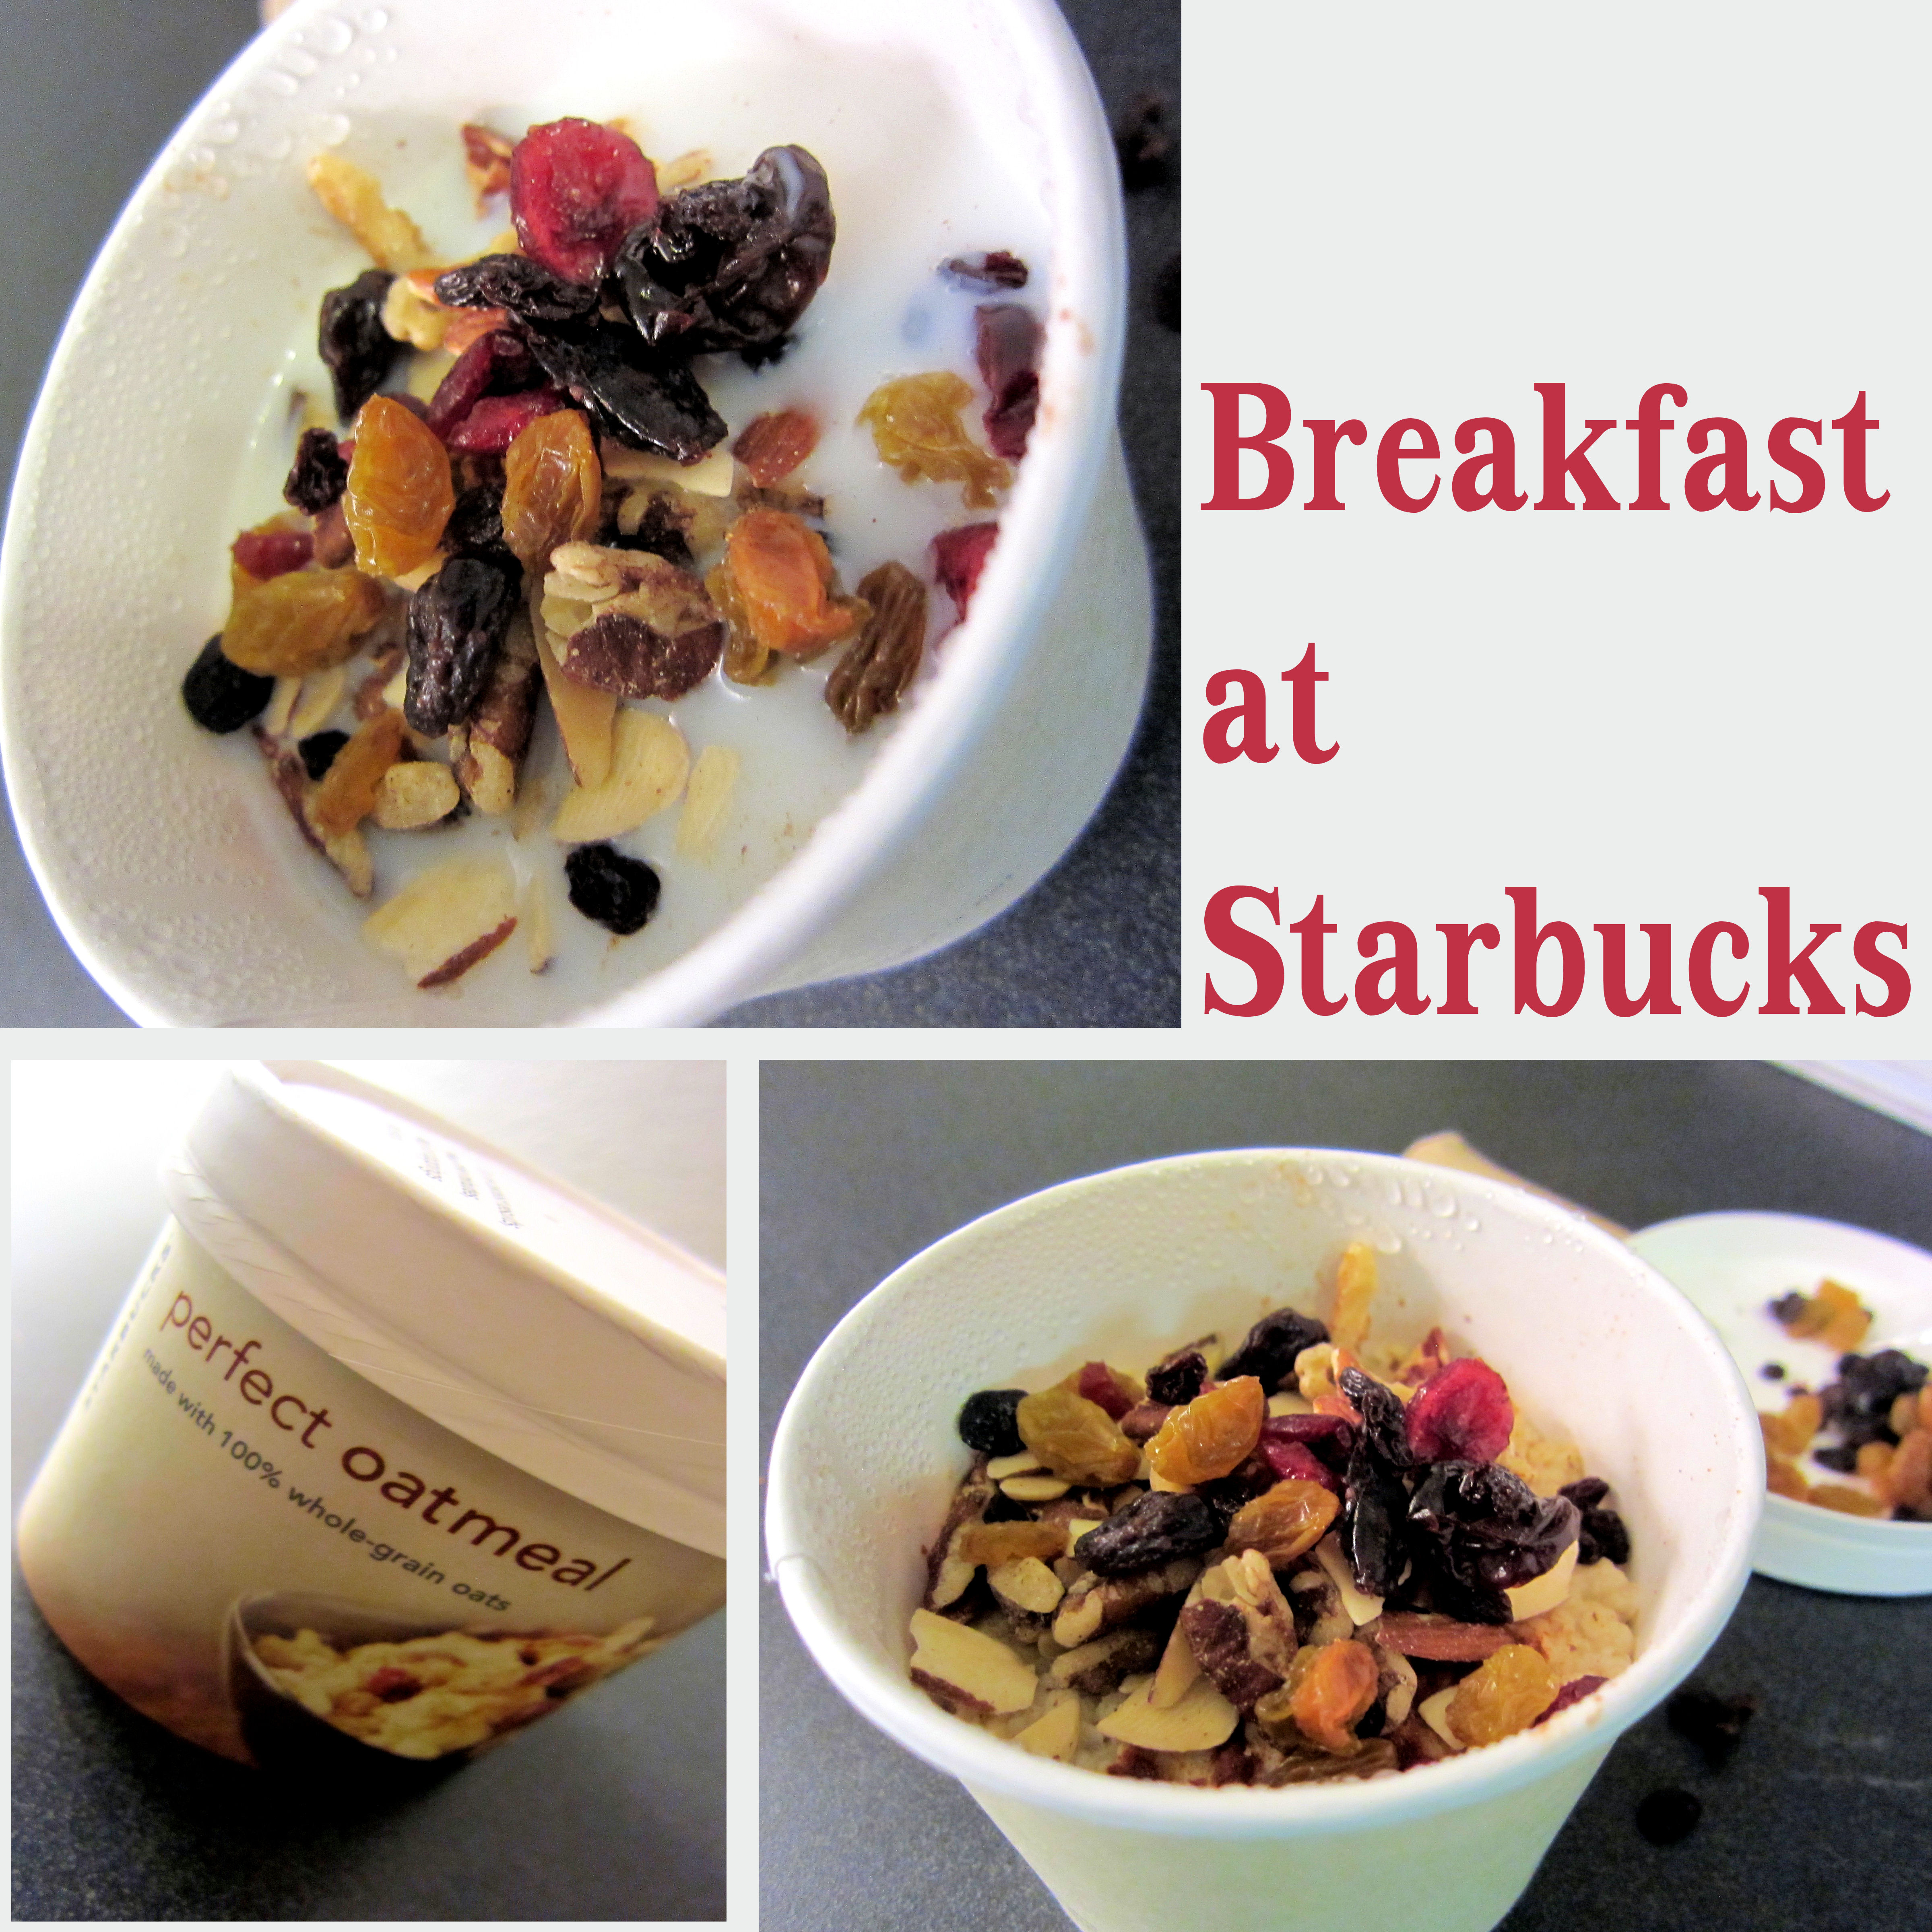 Starbucks Healthy Breakfast  Breakfast at Starbucks